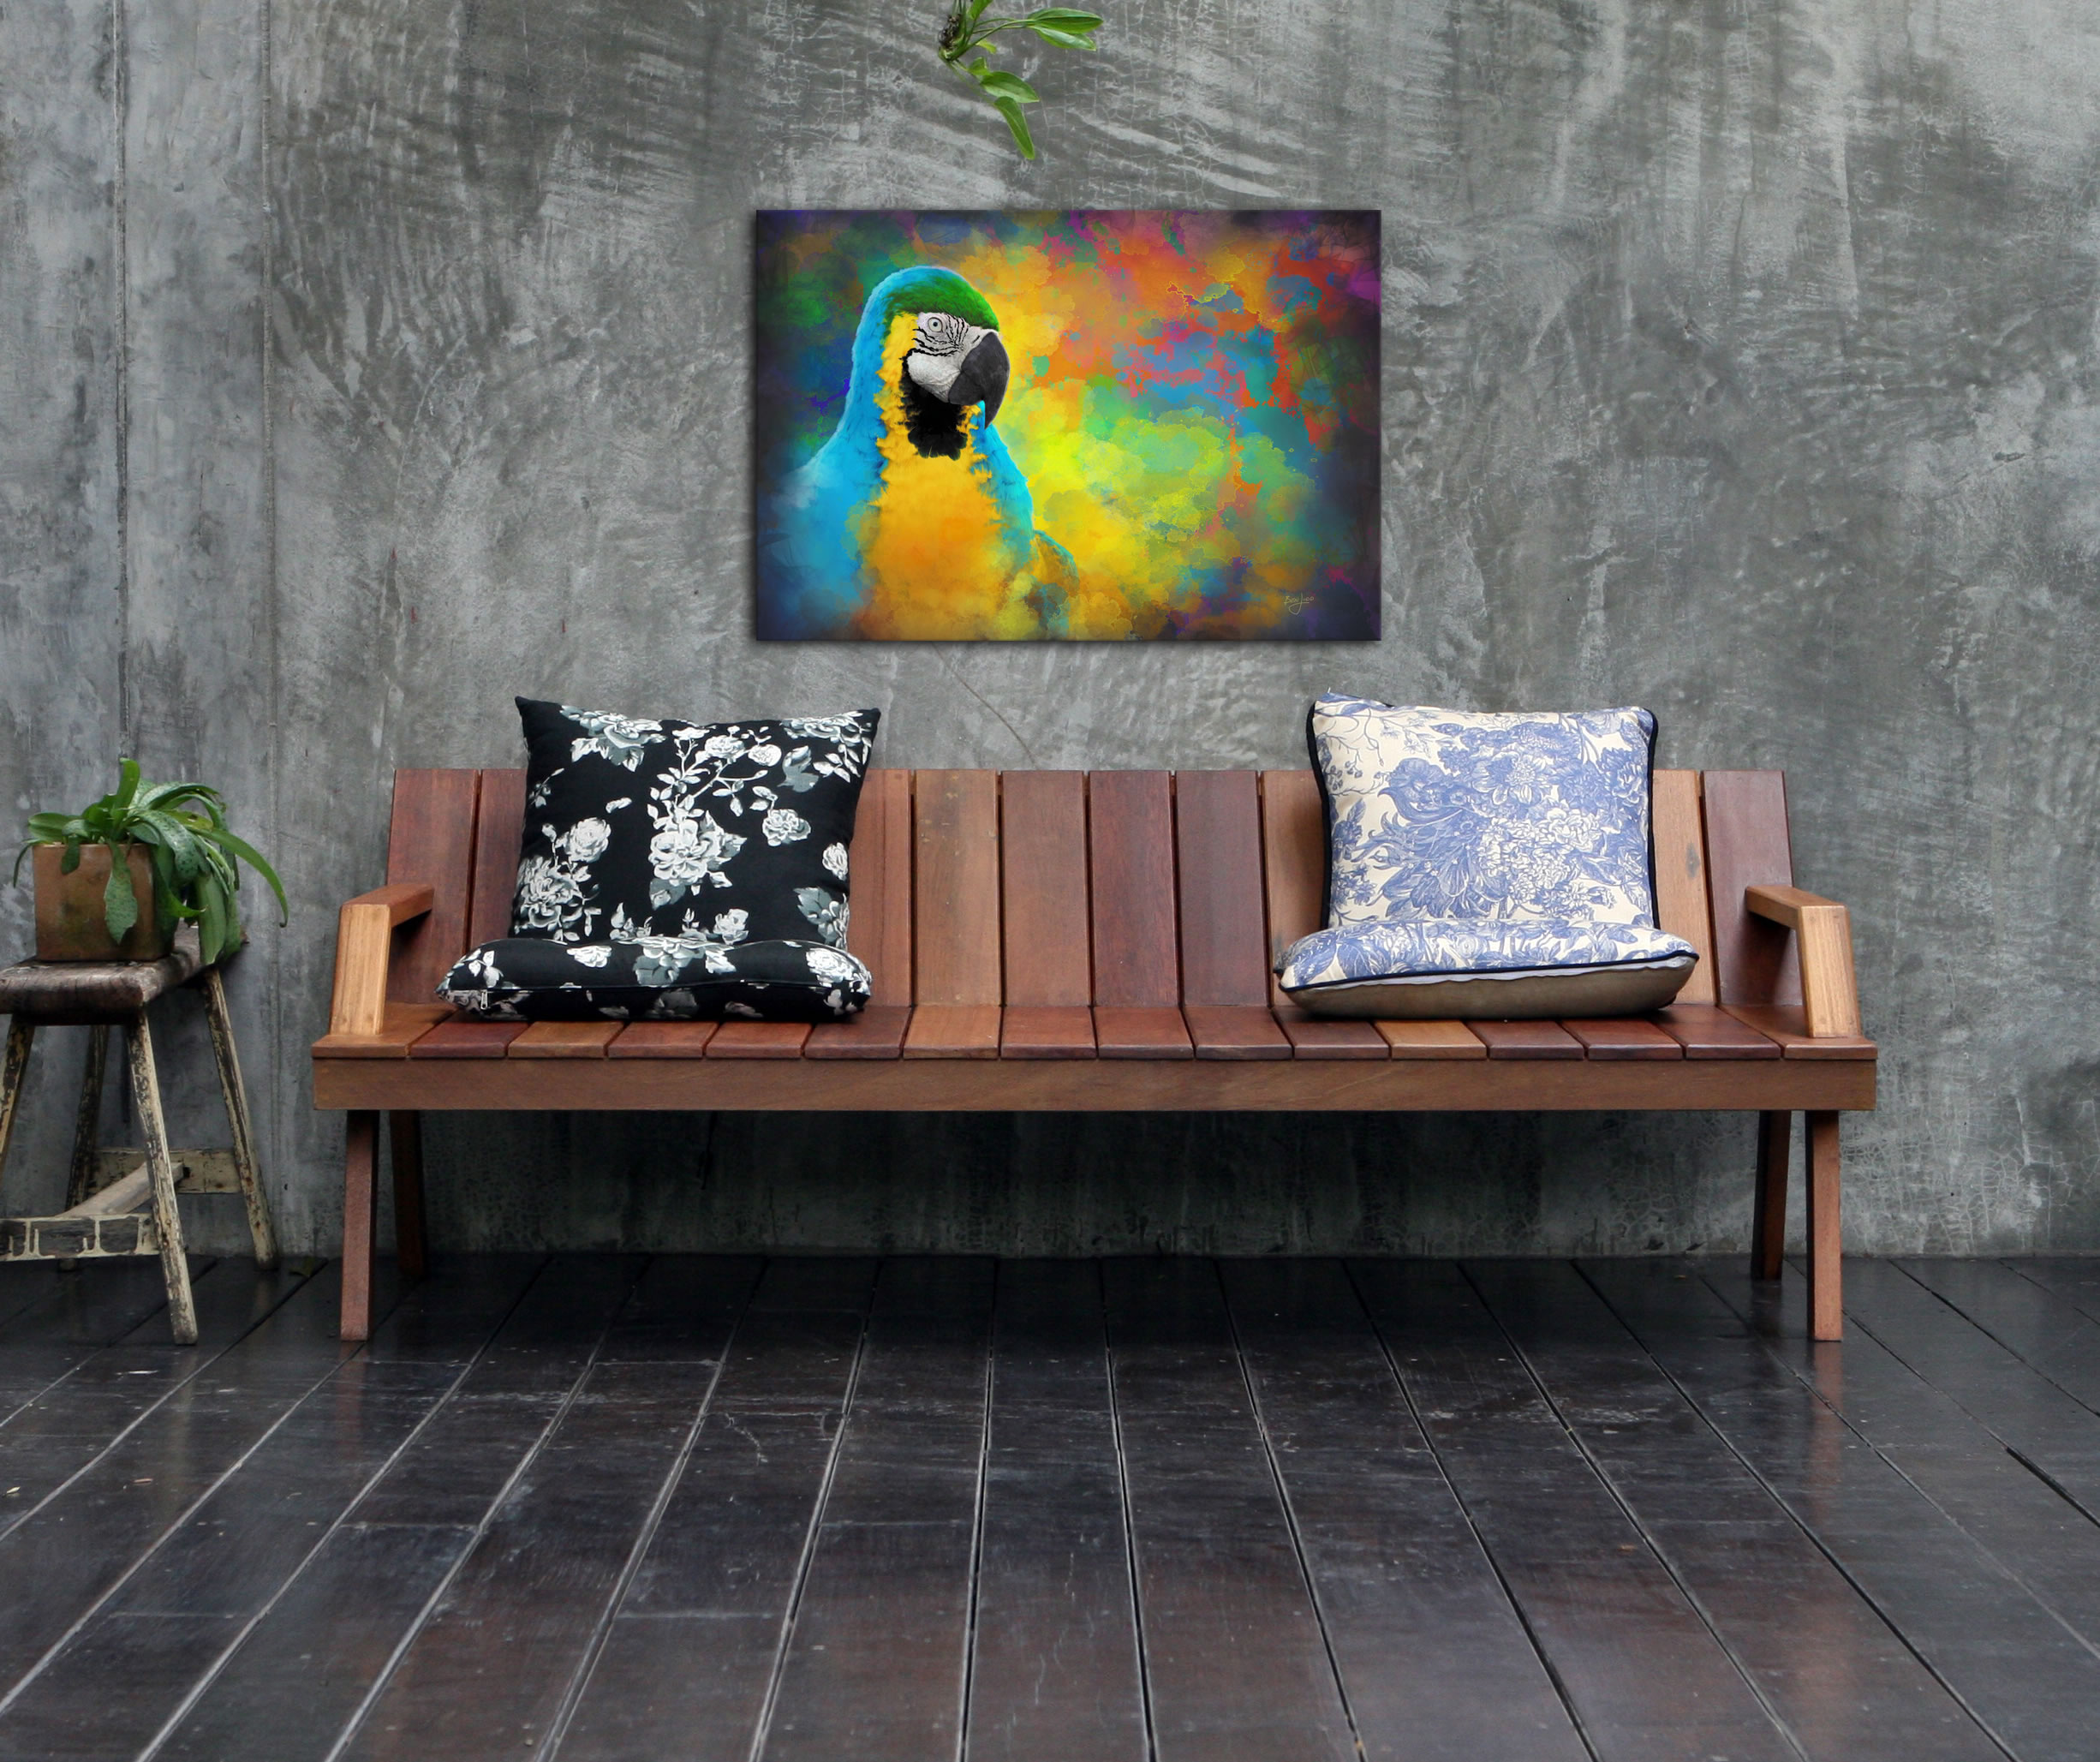 Parrot Splotch - Contemporary Rainbow Bird Art on Metal - Lifestyle Image